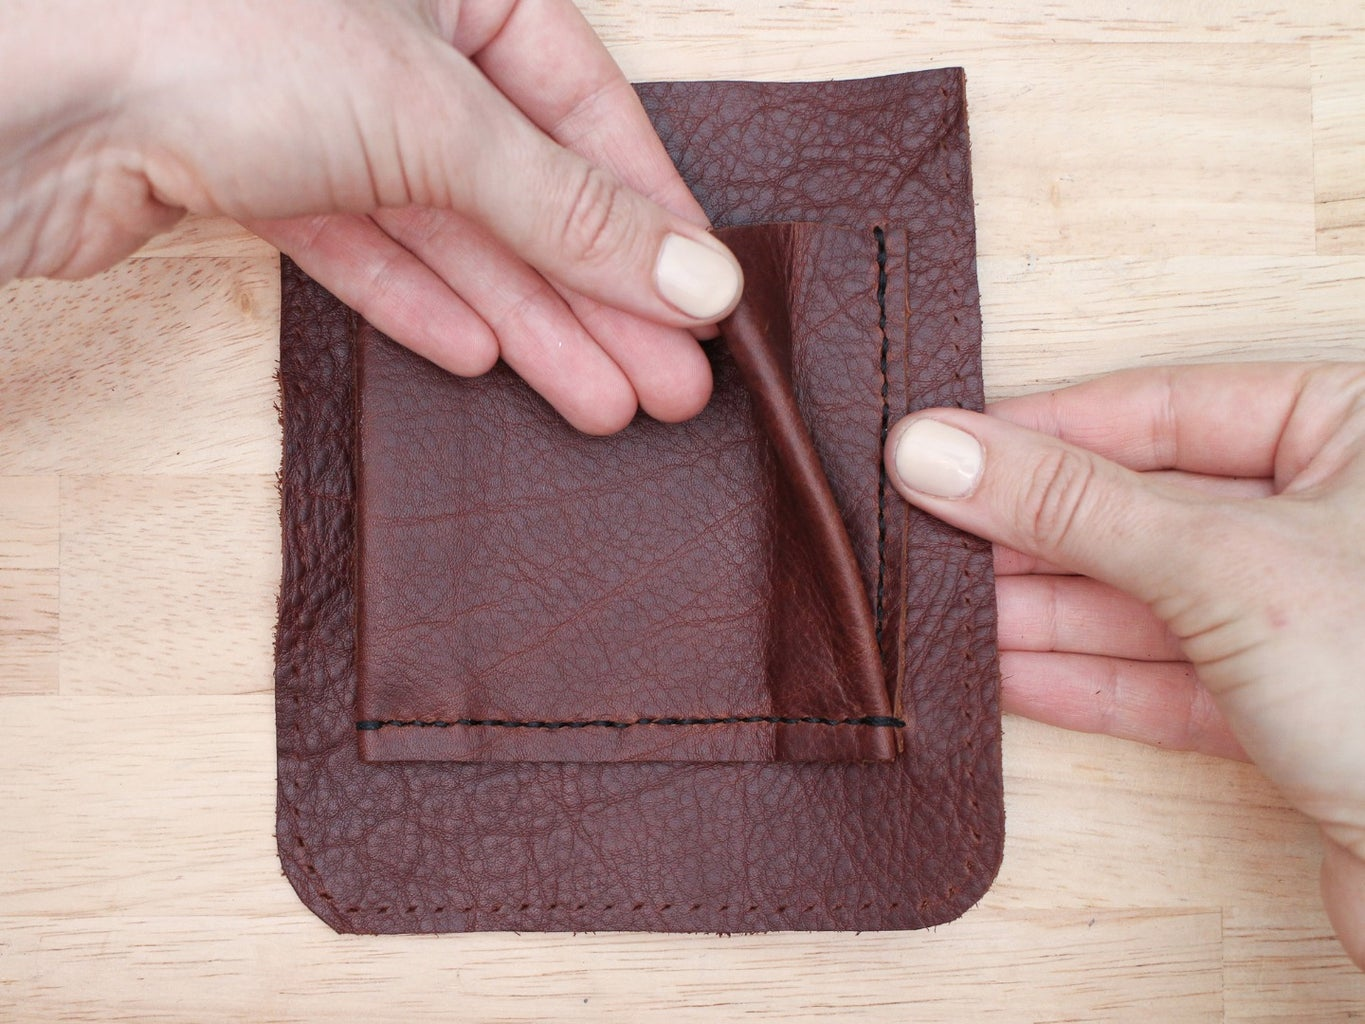 Sew the Pocket to Your Bag